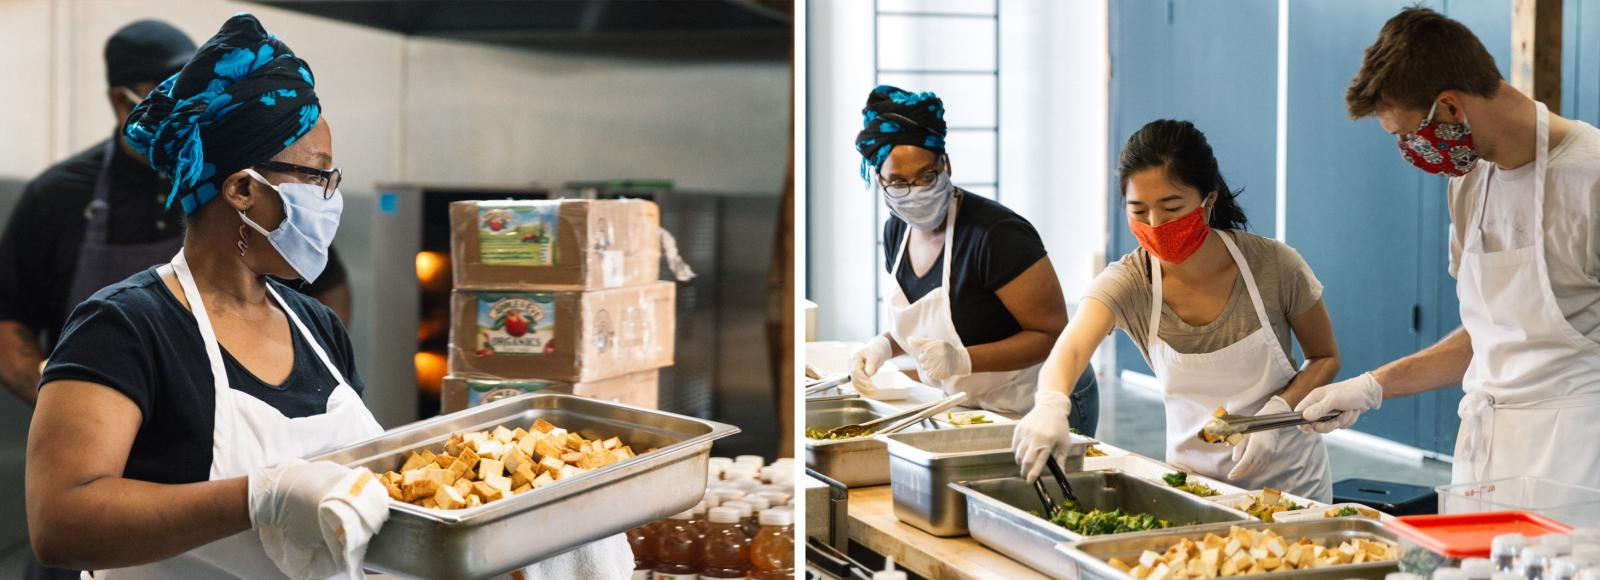 An image of two photos: The left photo shows a woman carrying a stainless steel tray with cubes of tofu; the right photo shows three people in an assembly line placing cooked vegetables and noodles into take-out containers.